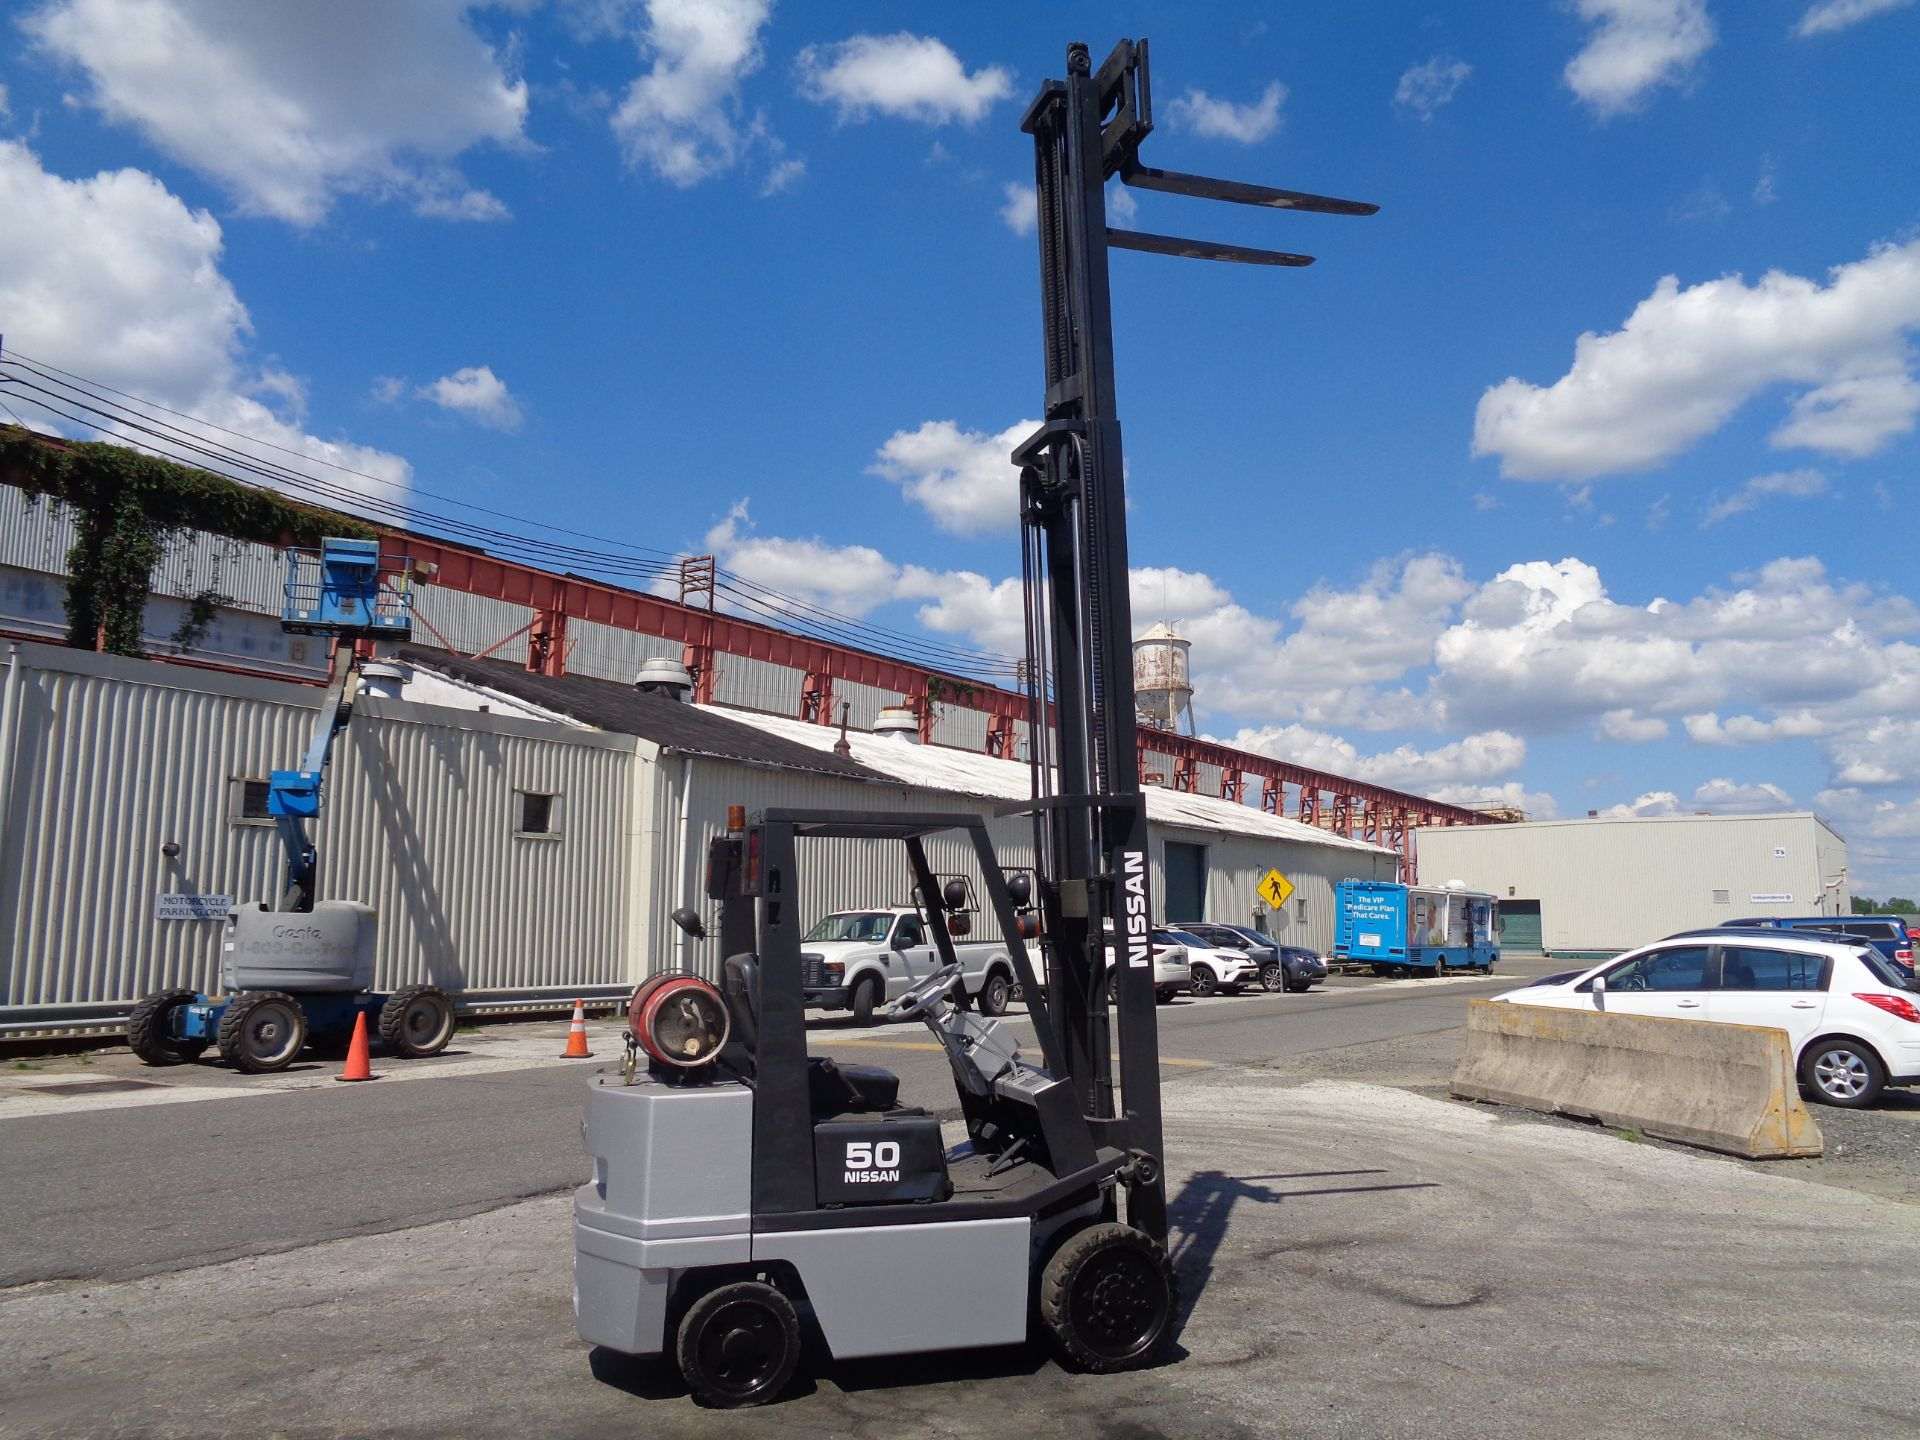 Nissan KCPH02A25PV 4,400 lb Forklift - Image 12 of 17